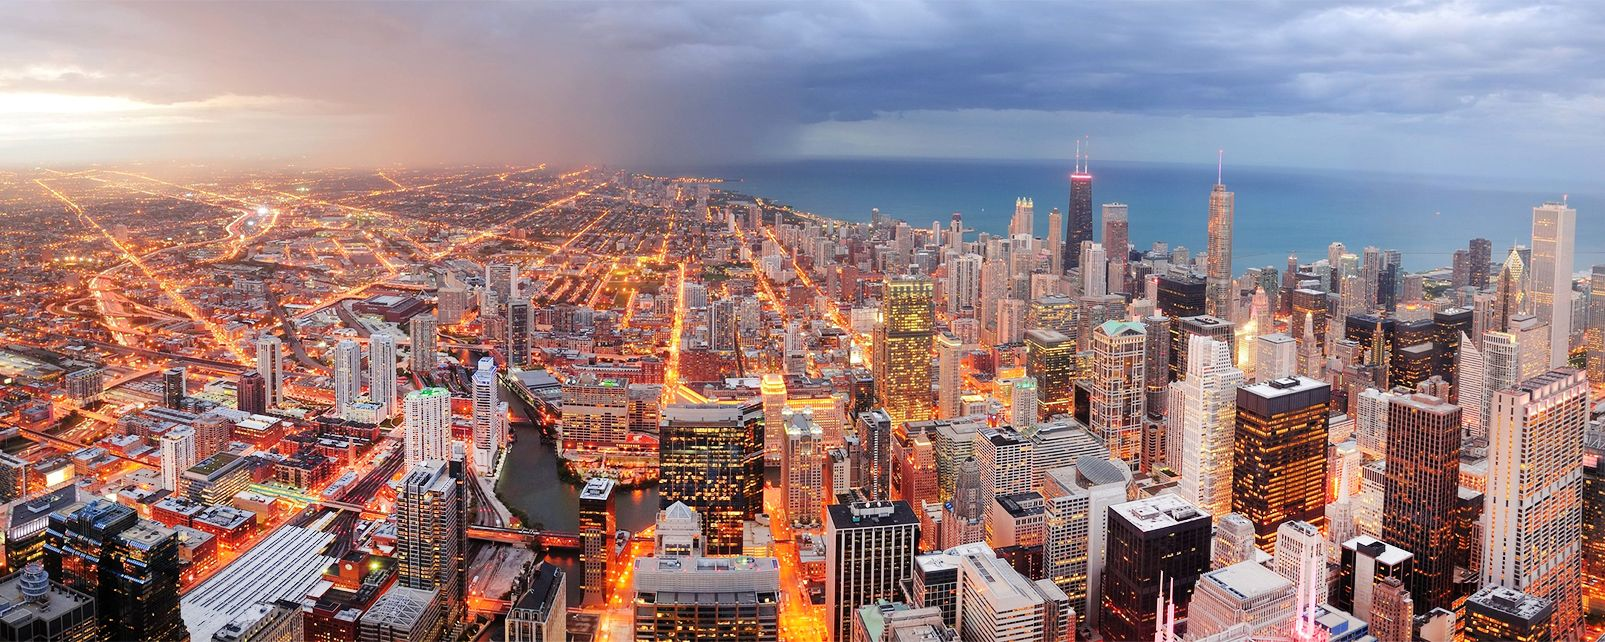 Chicago, Midwestern USA, United States of America